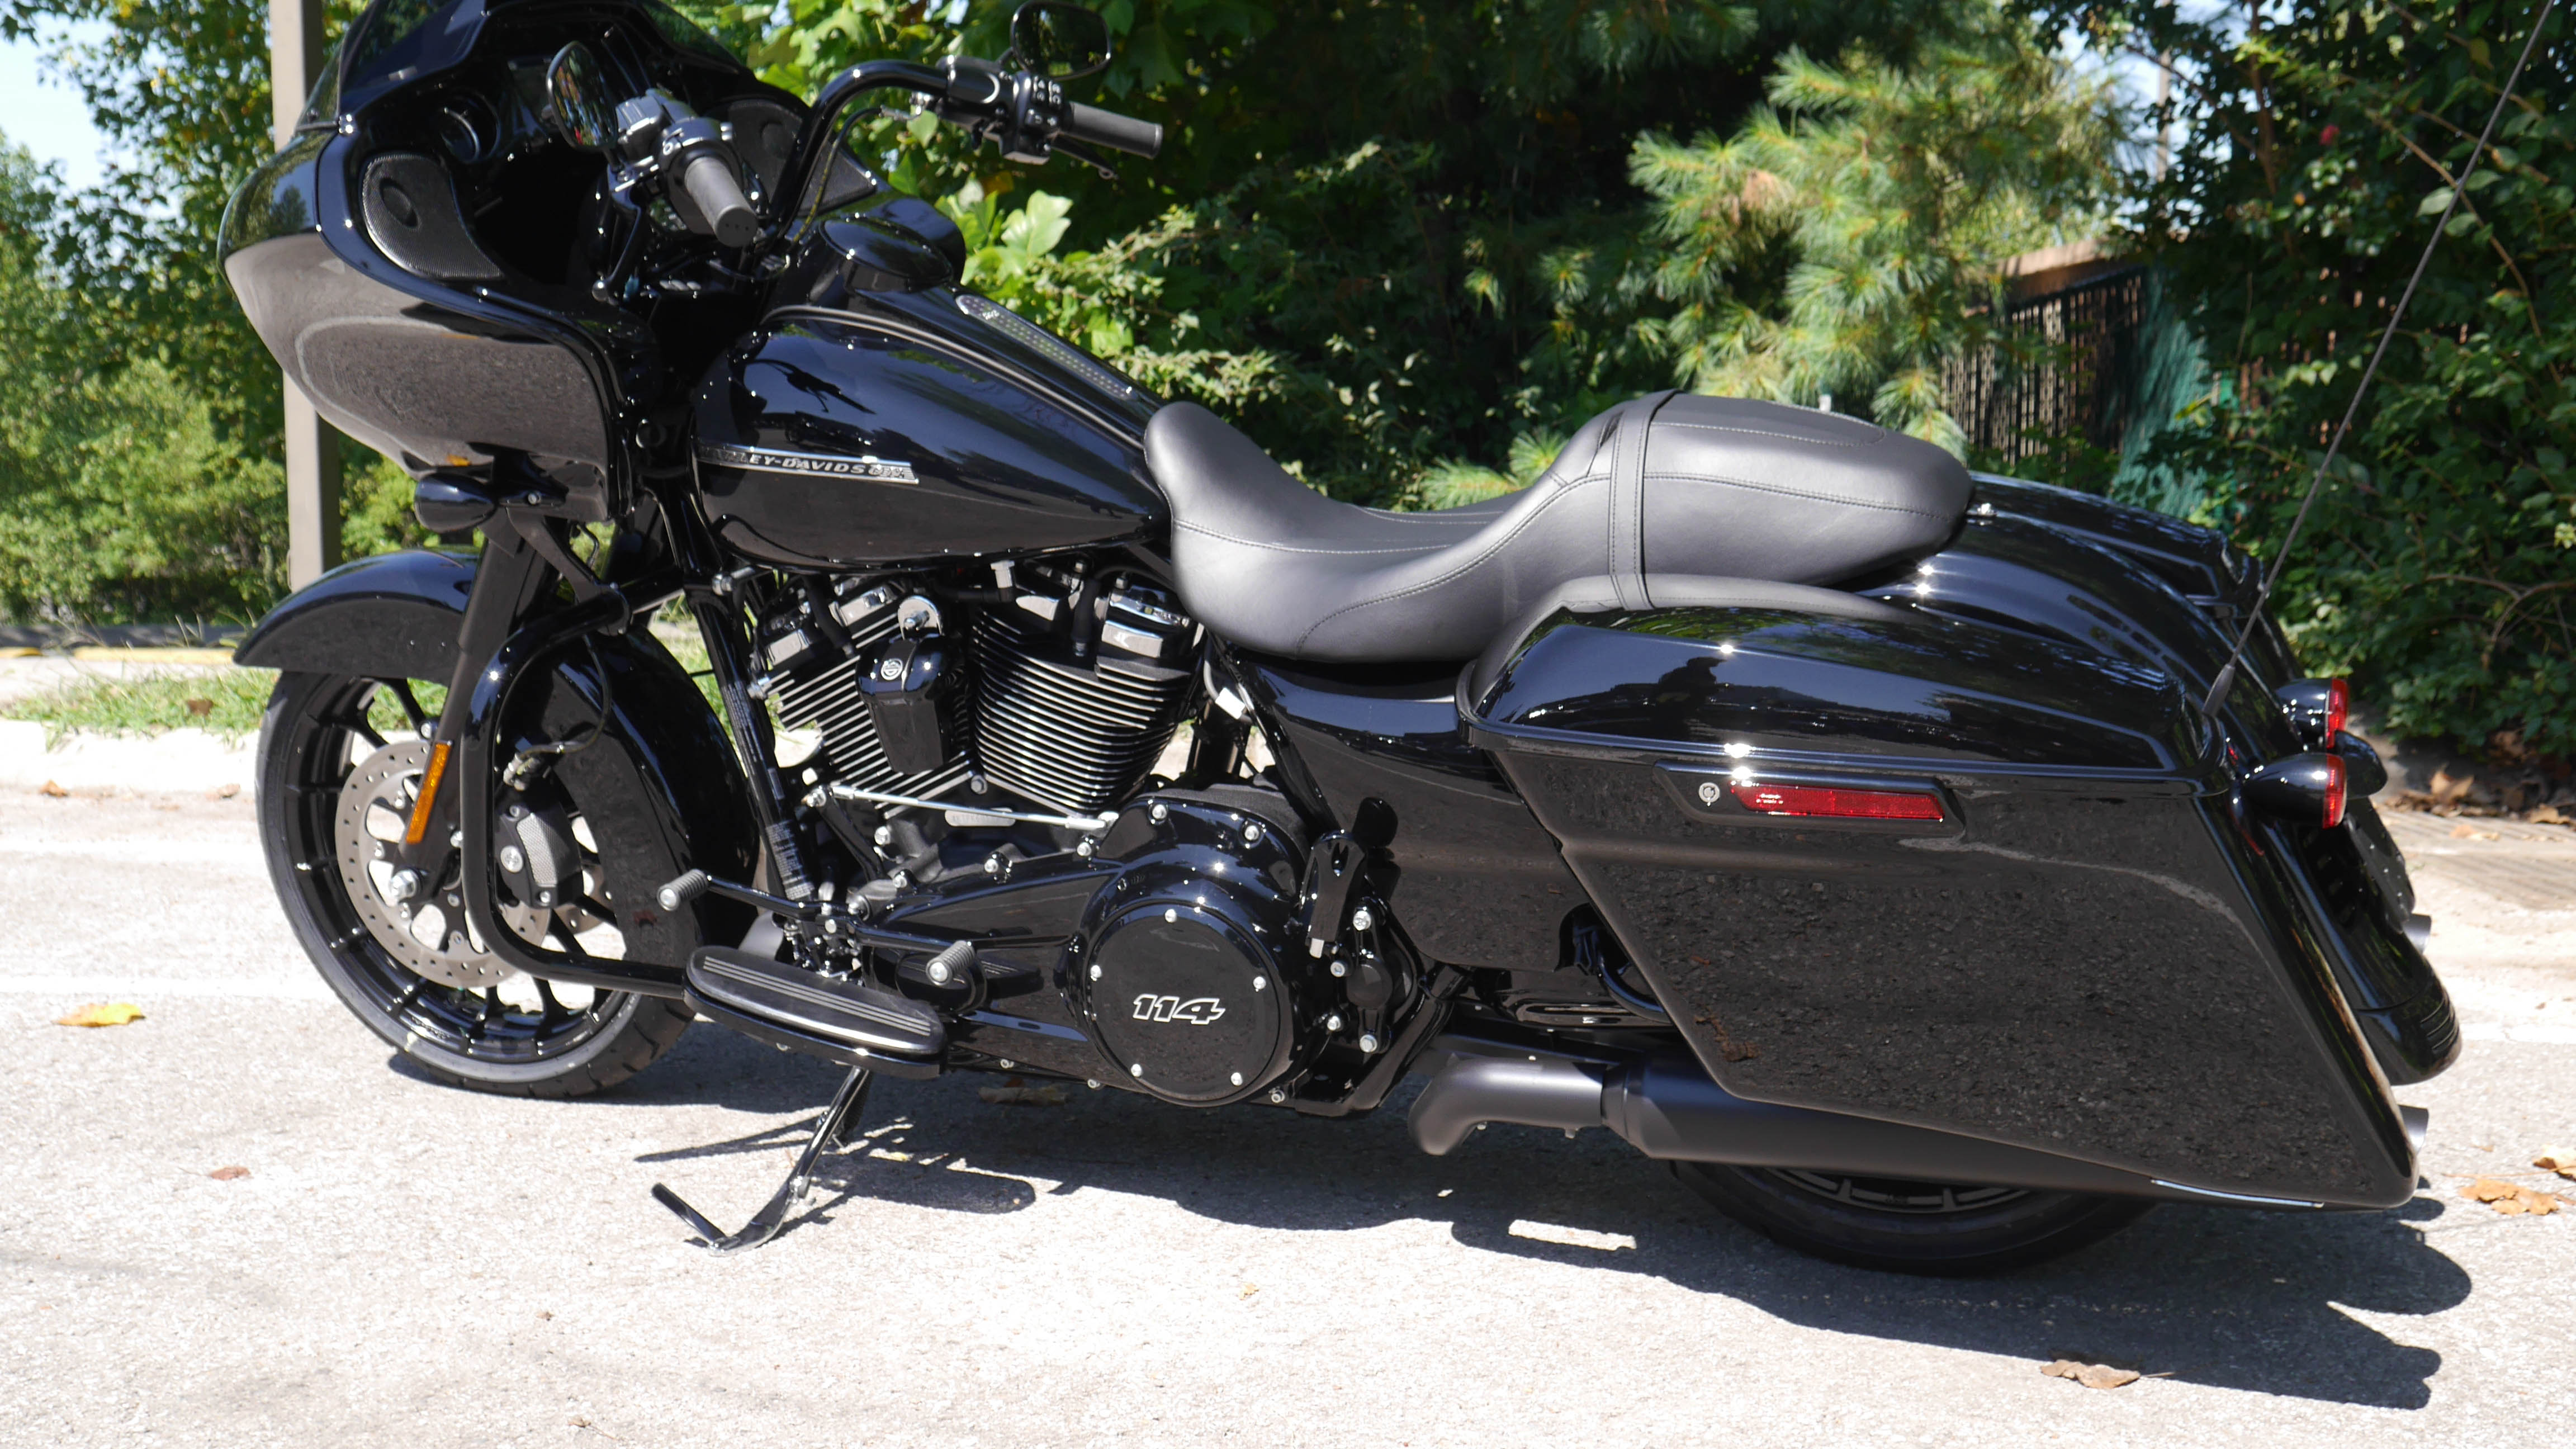 New 2019 Harley-Davidson Touring Road Glide Special